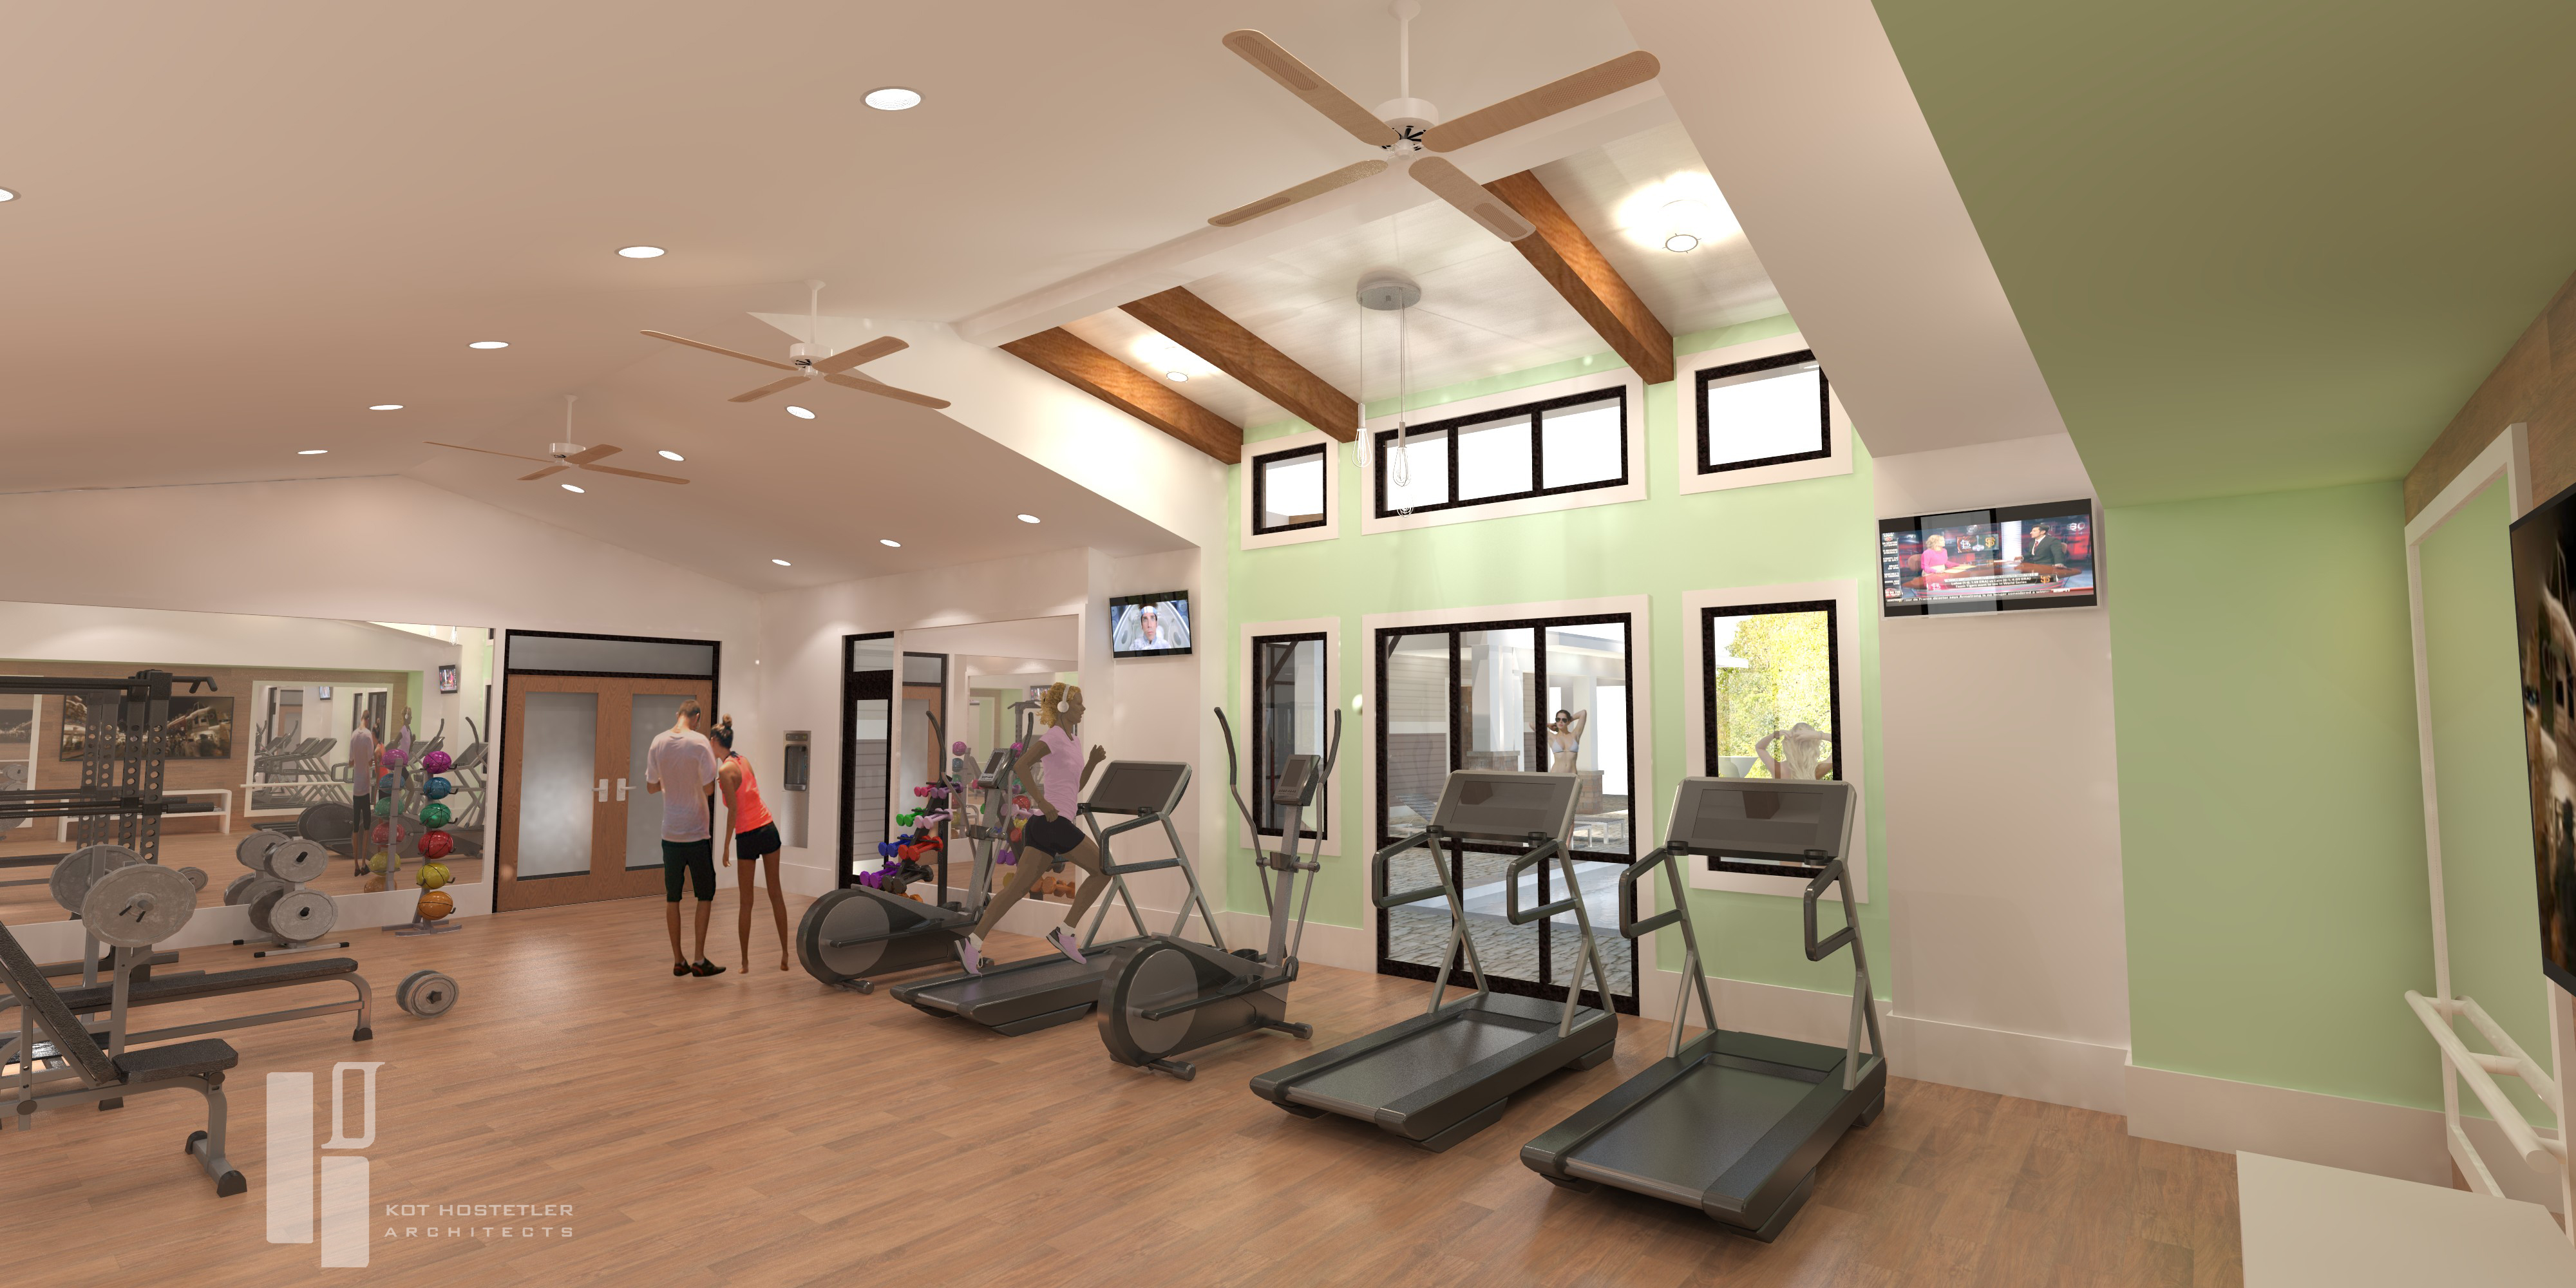 16004_Abbotts Run Clubhouse_Fitness Room Int. Persp._REV3